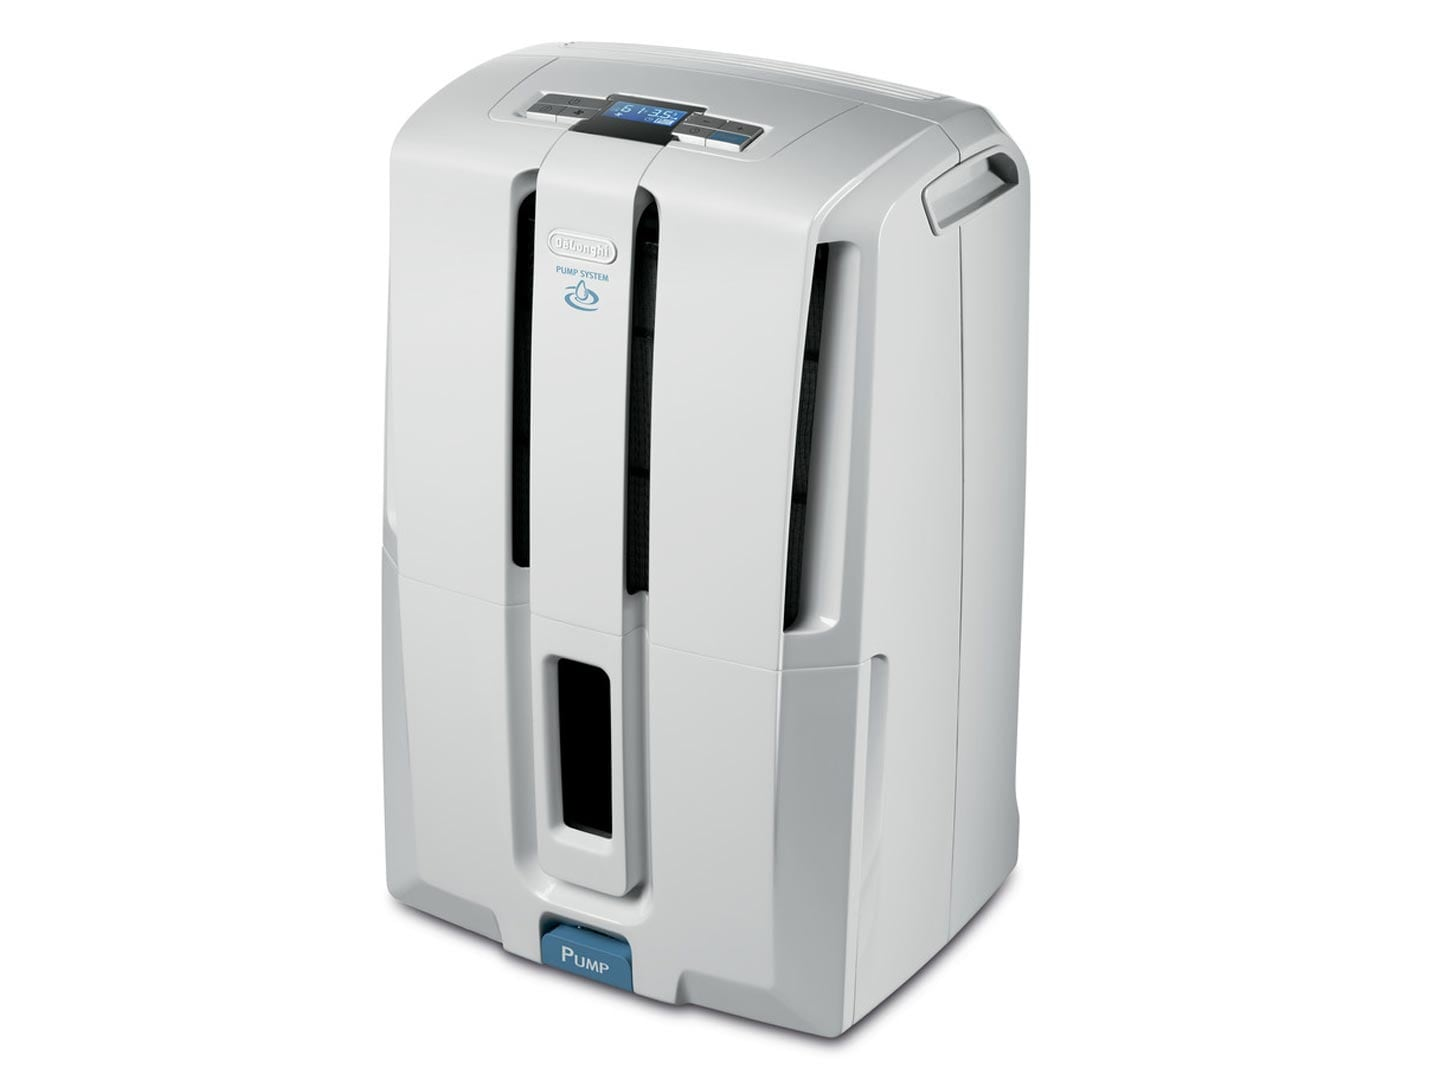 delonghi dehumidifier den500p instruction manual